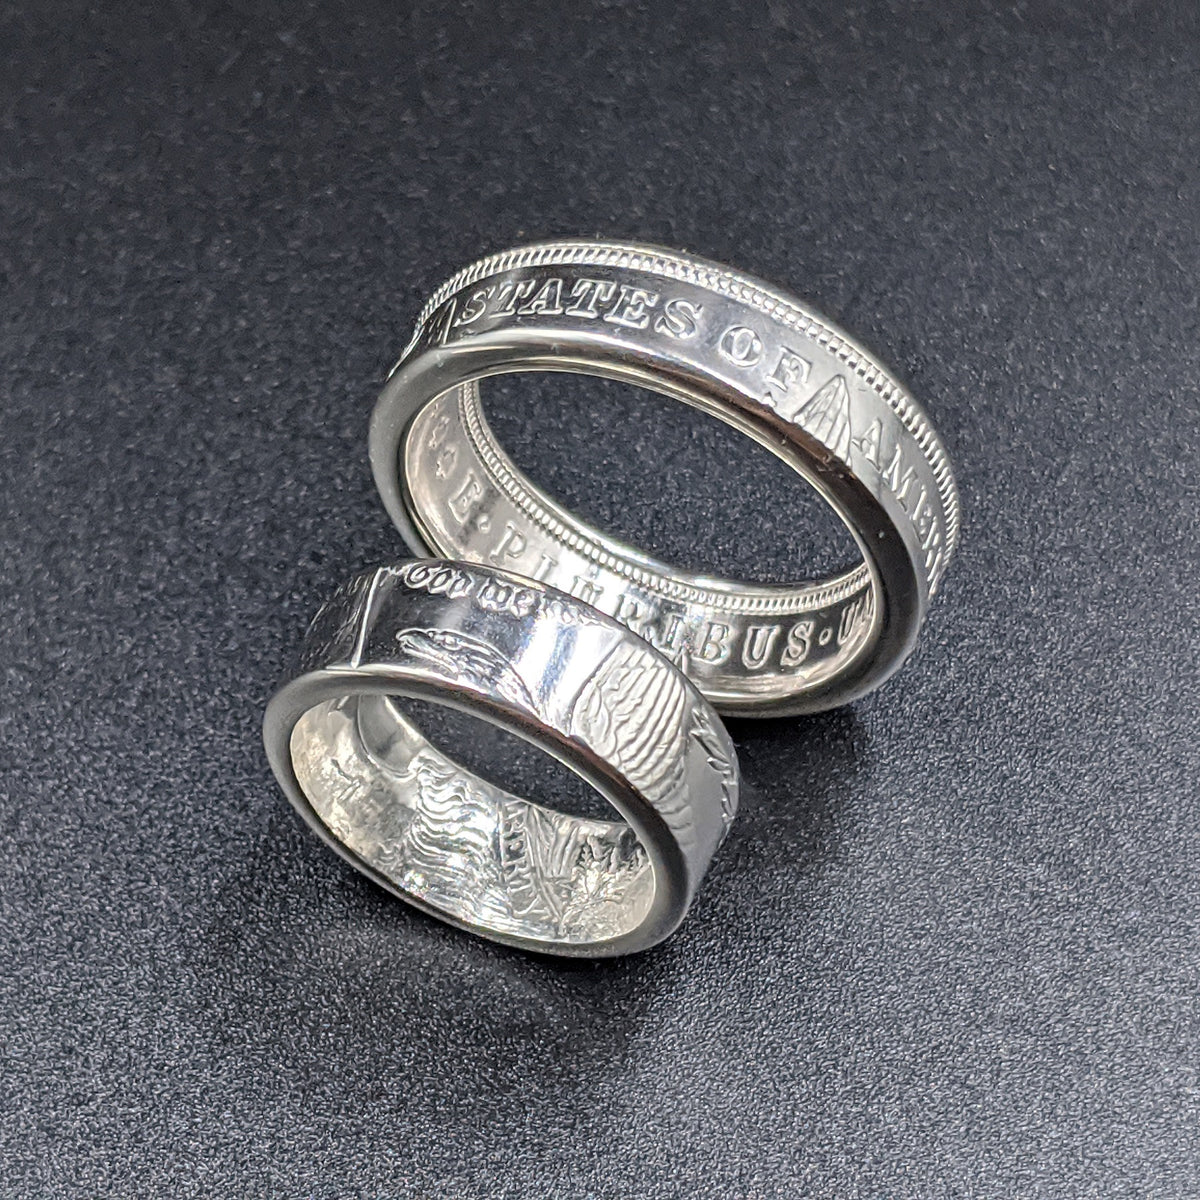 Morgan Silver Dollar Wedding Band Set